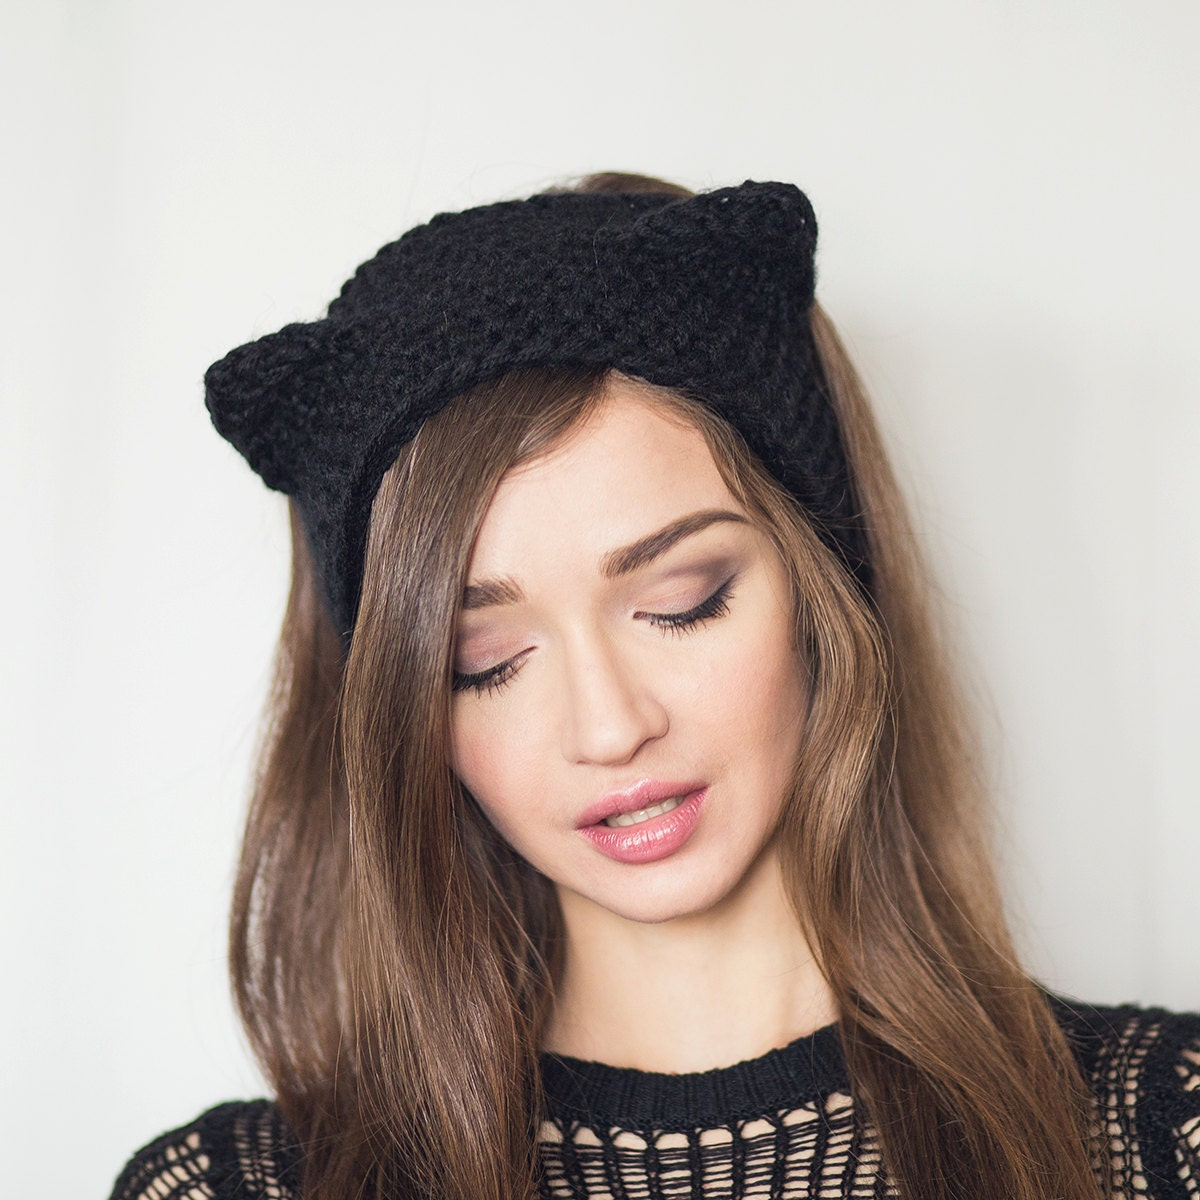 acrylic knit headband black cat cat ears headband headband